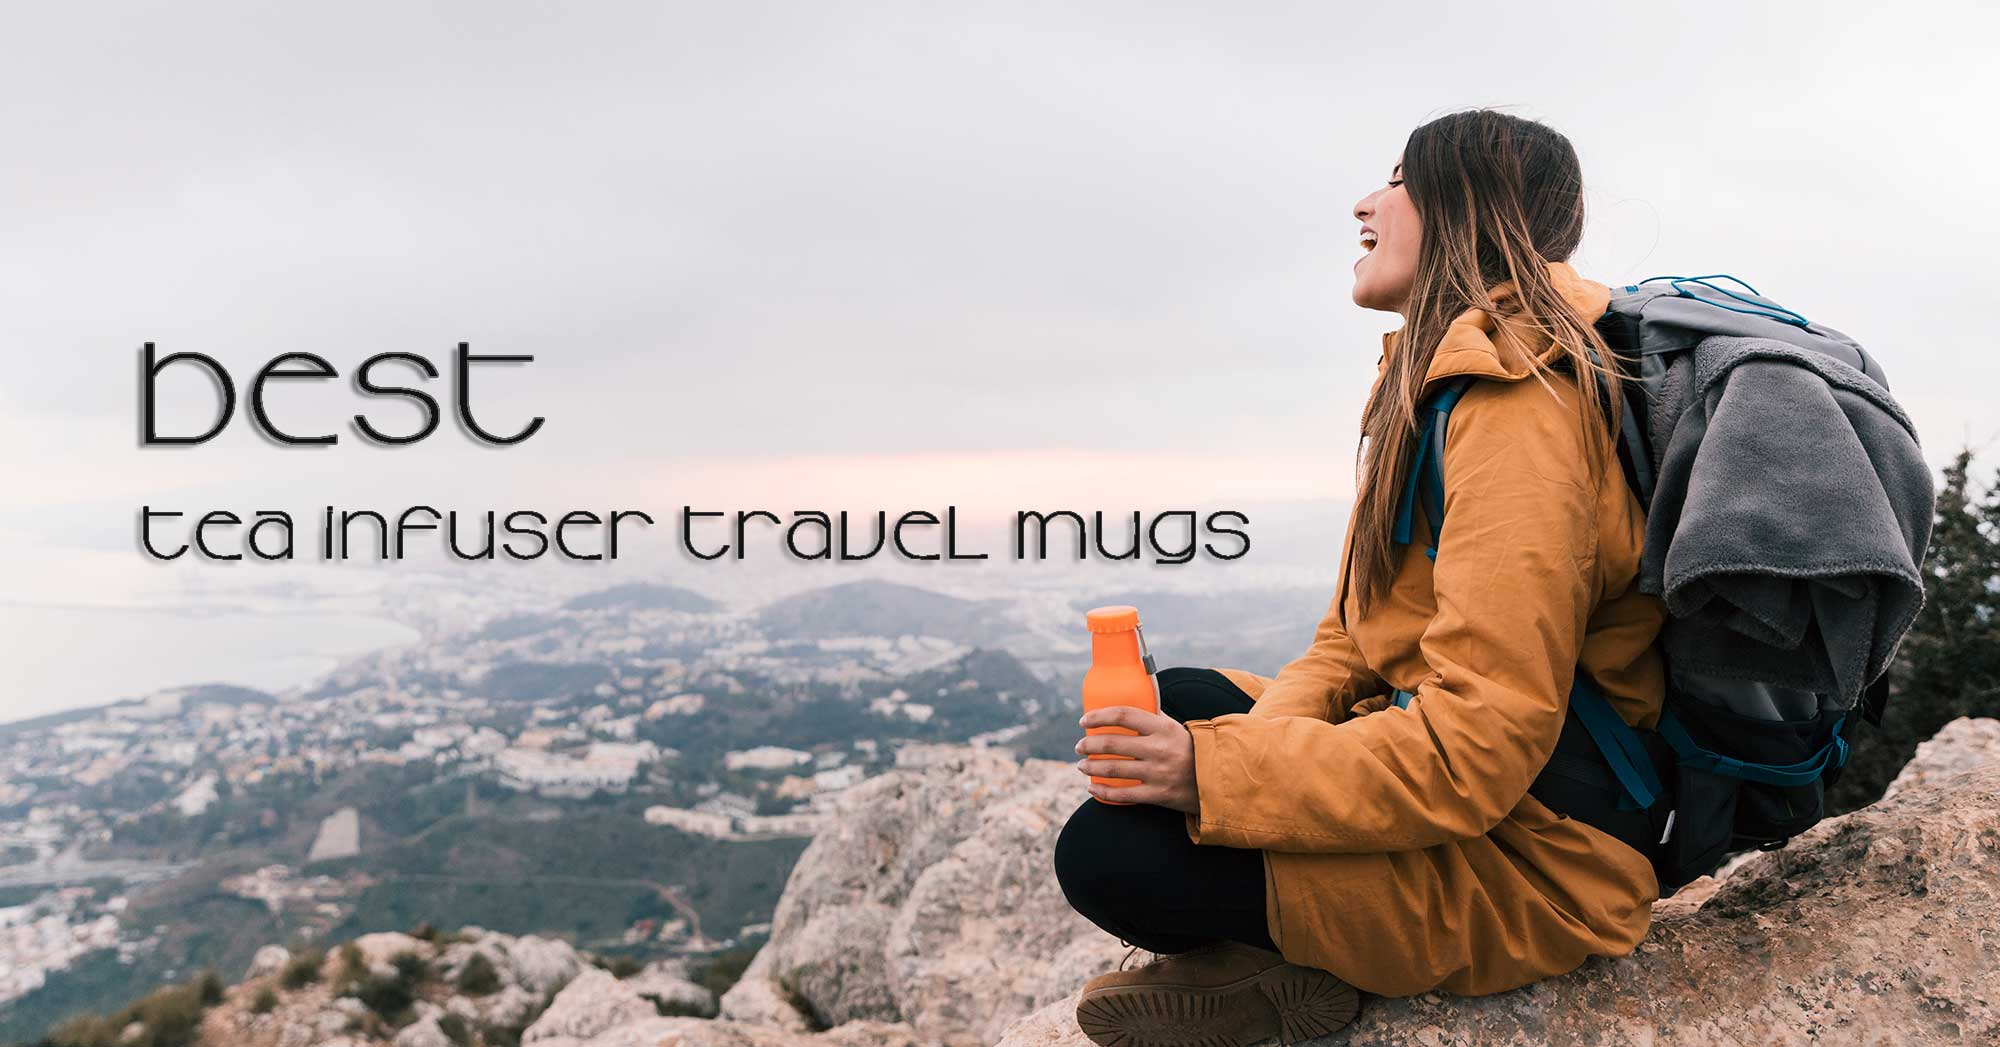 Here are some of the best infuser travel mugs that you may find useful